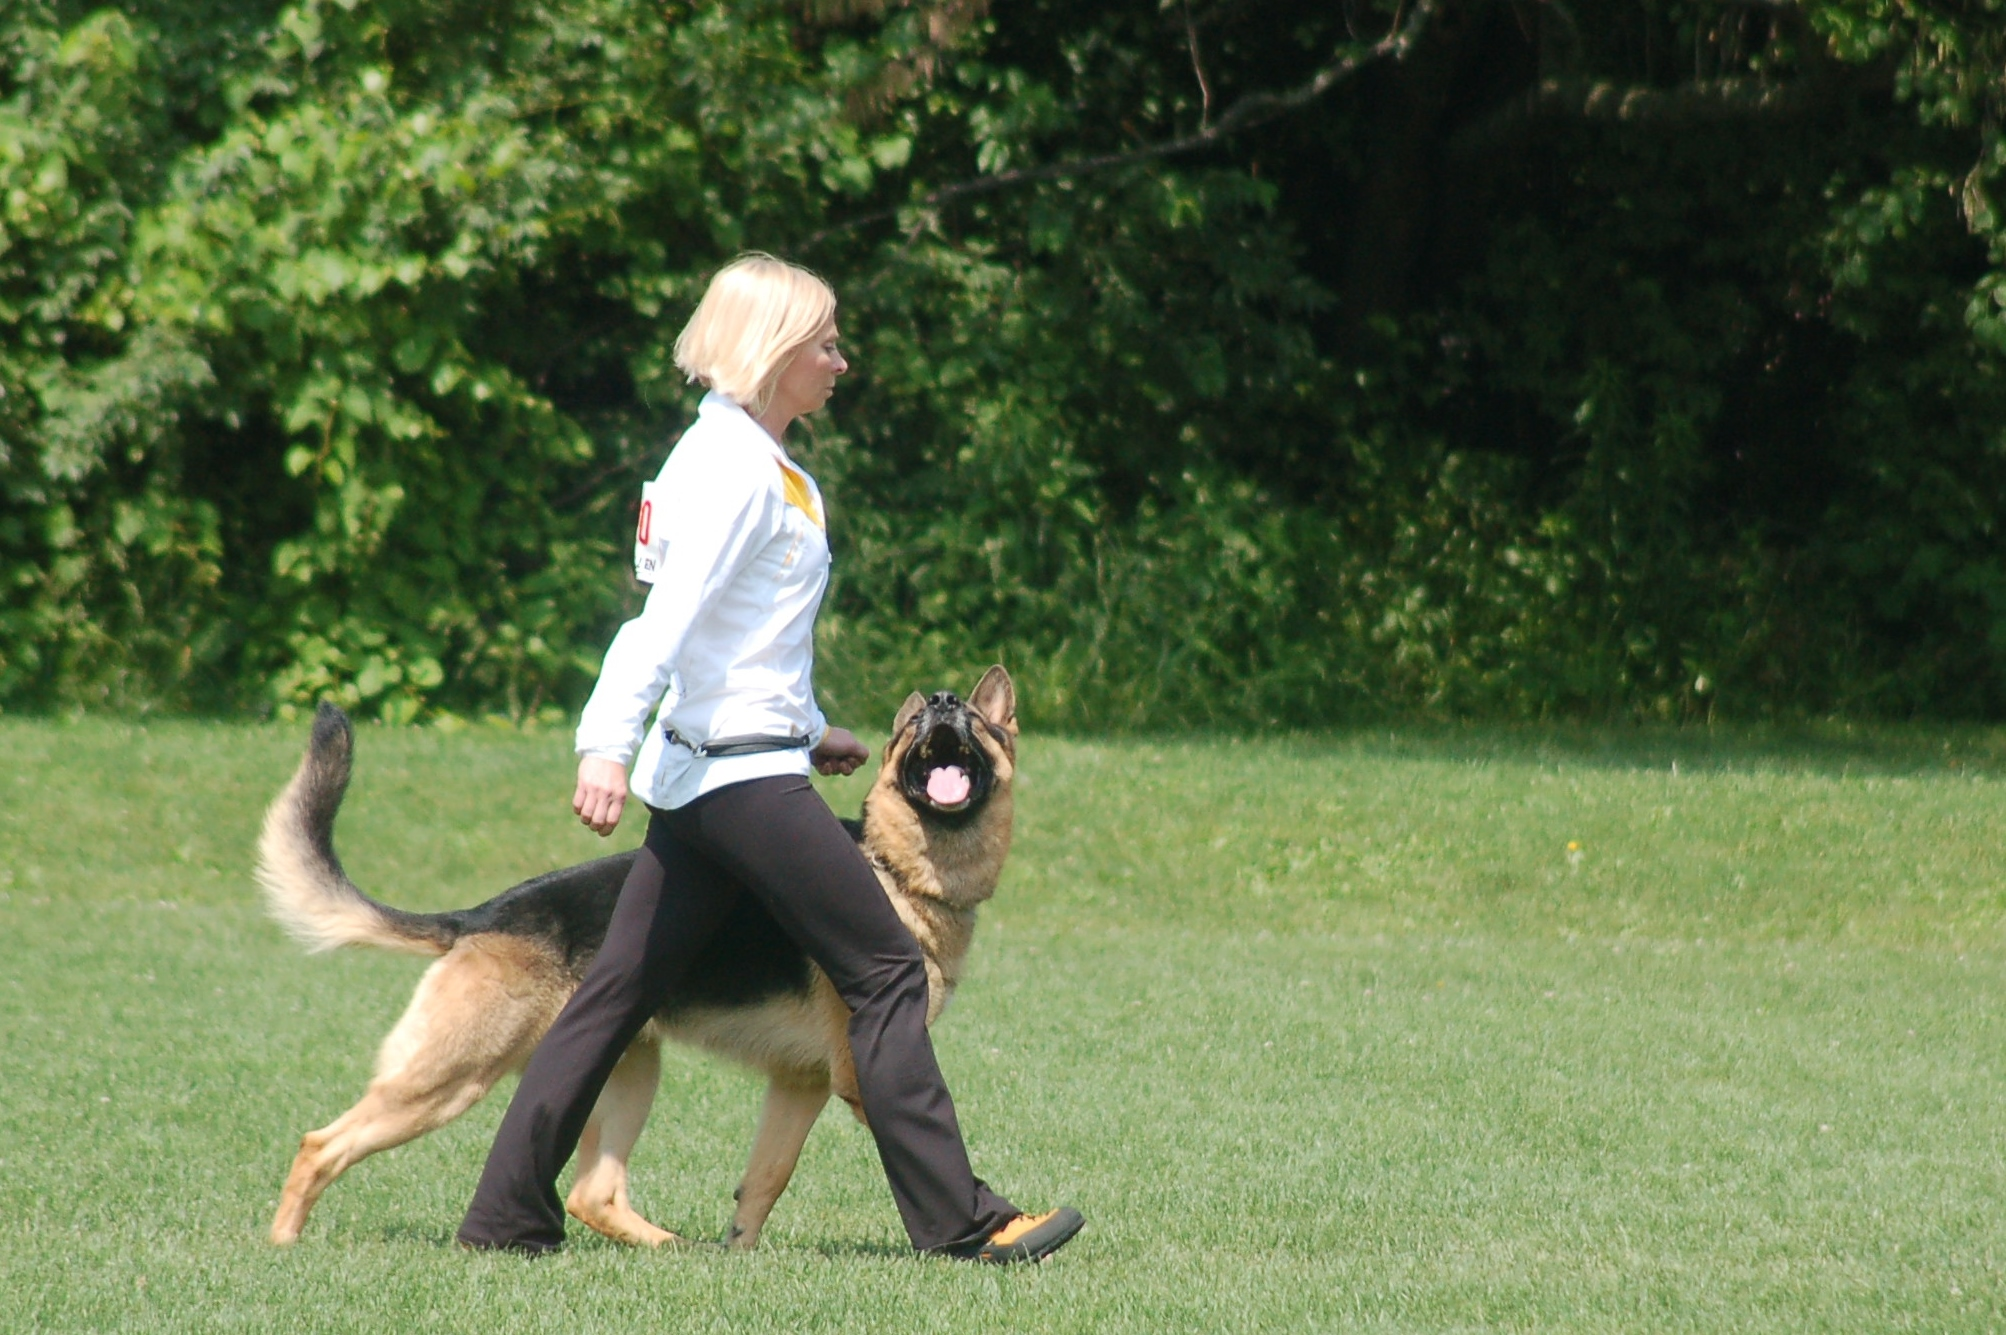 Formal heeling with attention for competition. Practical walking on a leash is recommended for everyday activities.